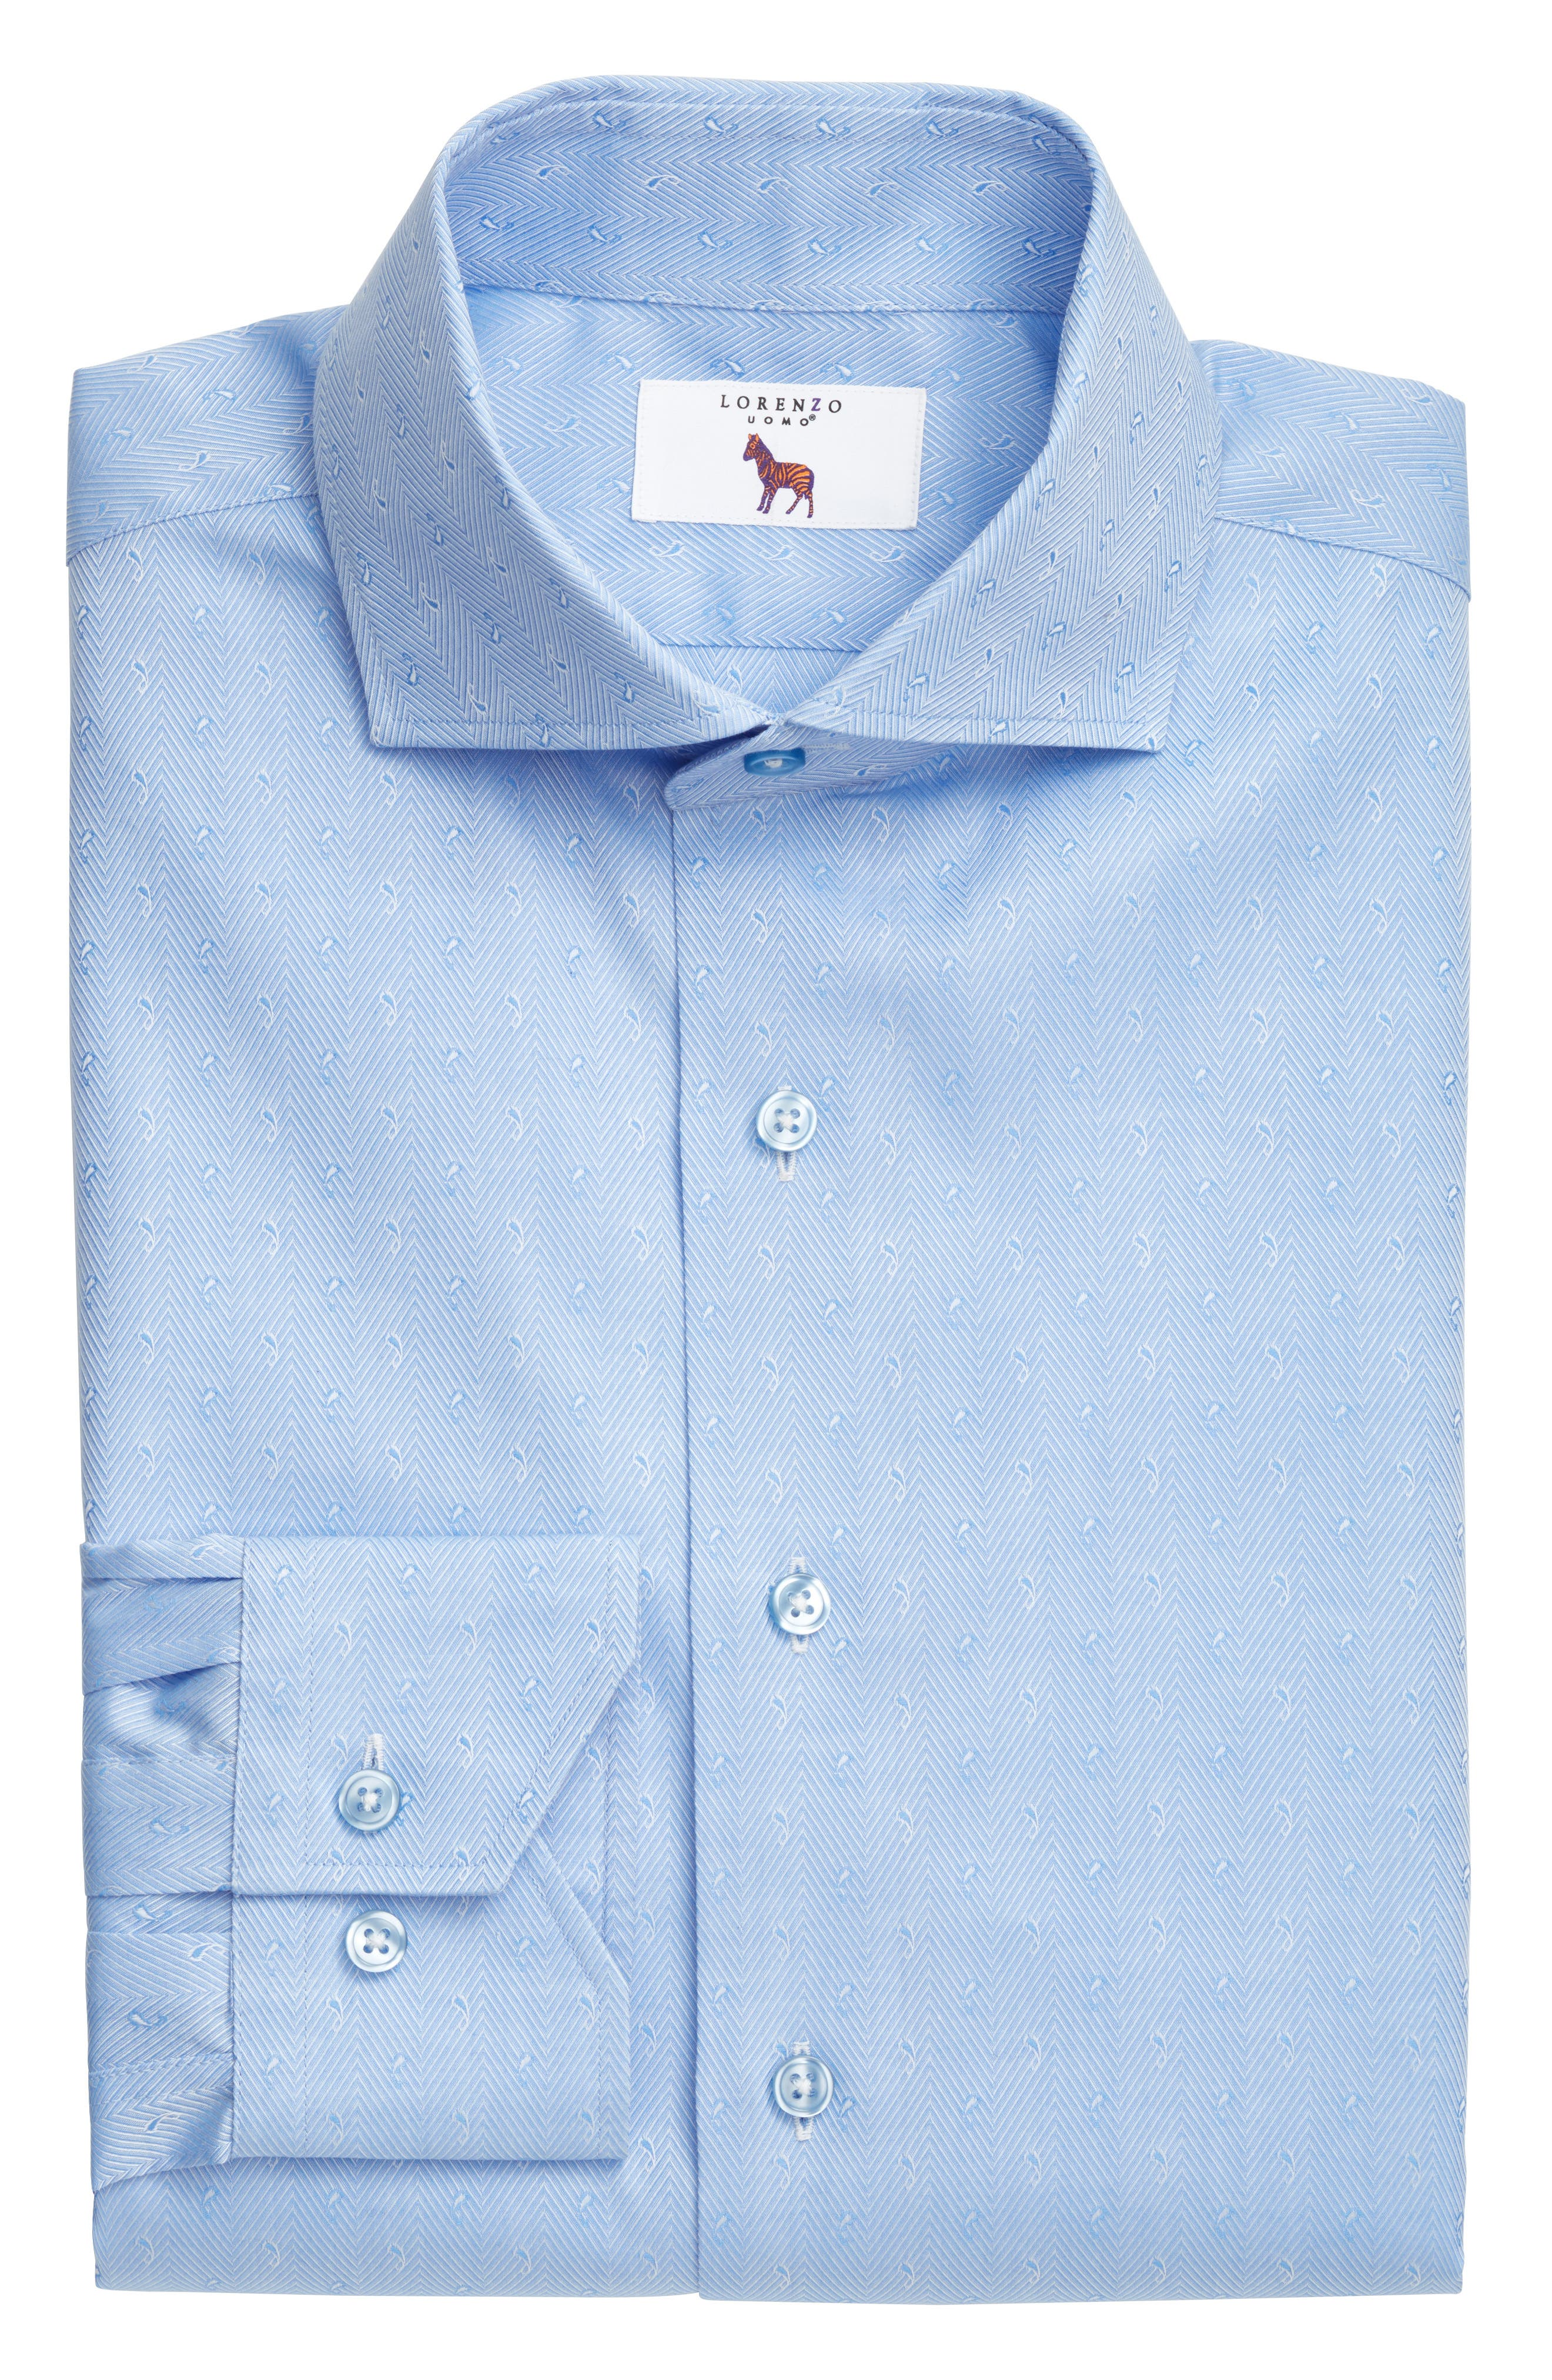 Trim Fit Herringbone Dress Shirt,                             Alternate thumbnail 4, color,                             Light Blue